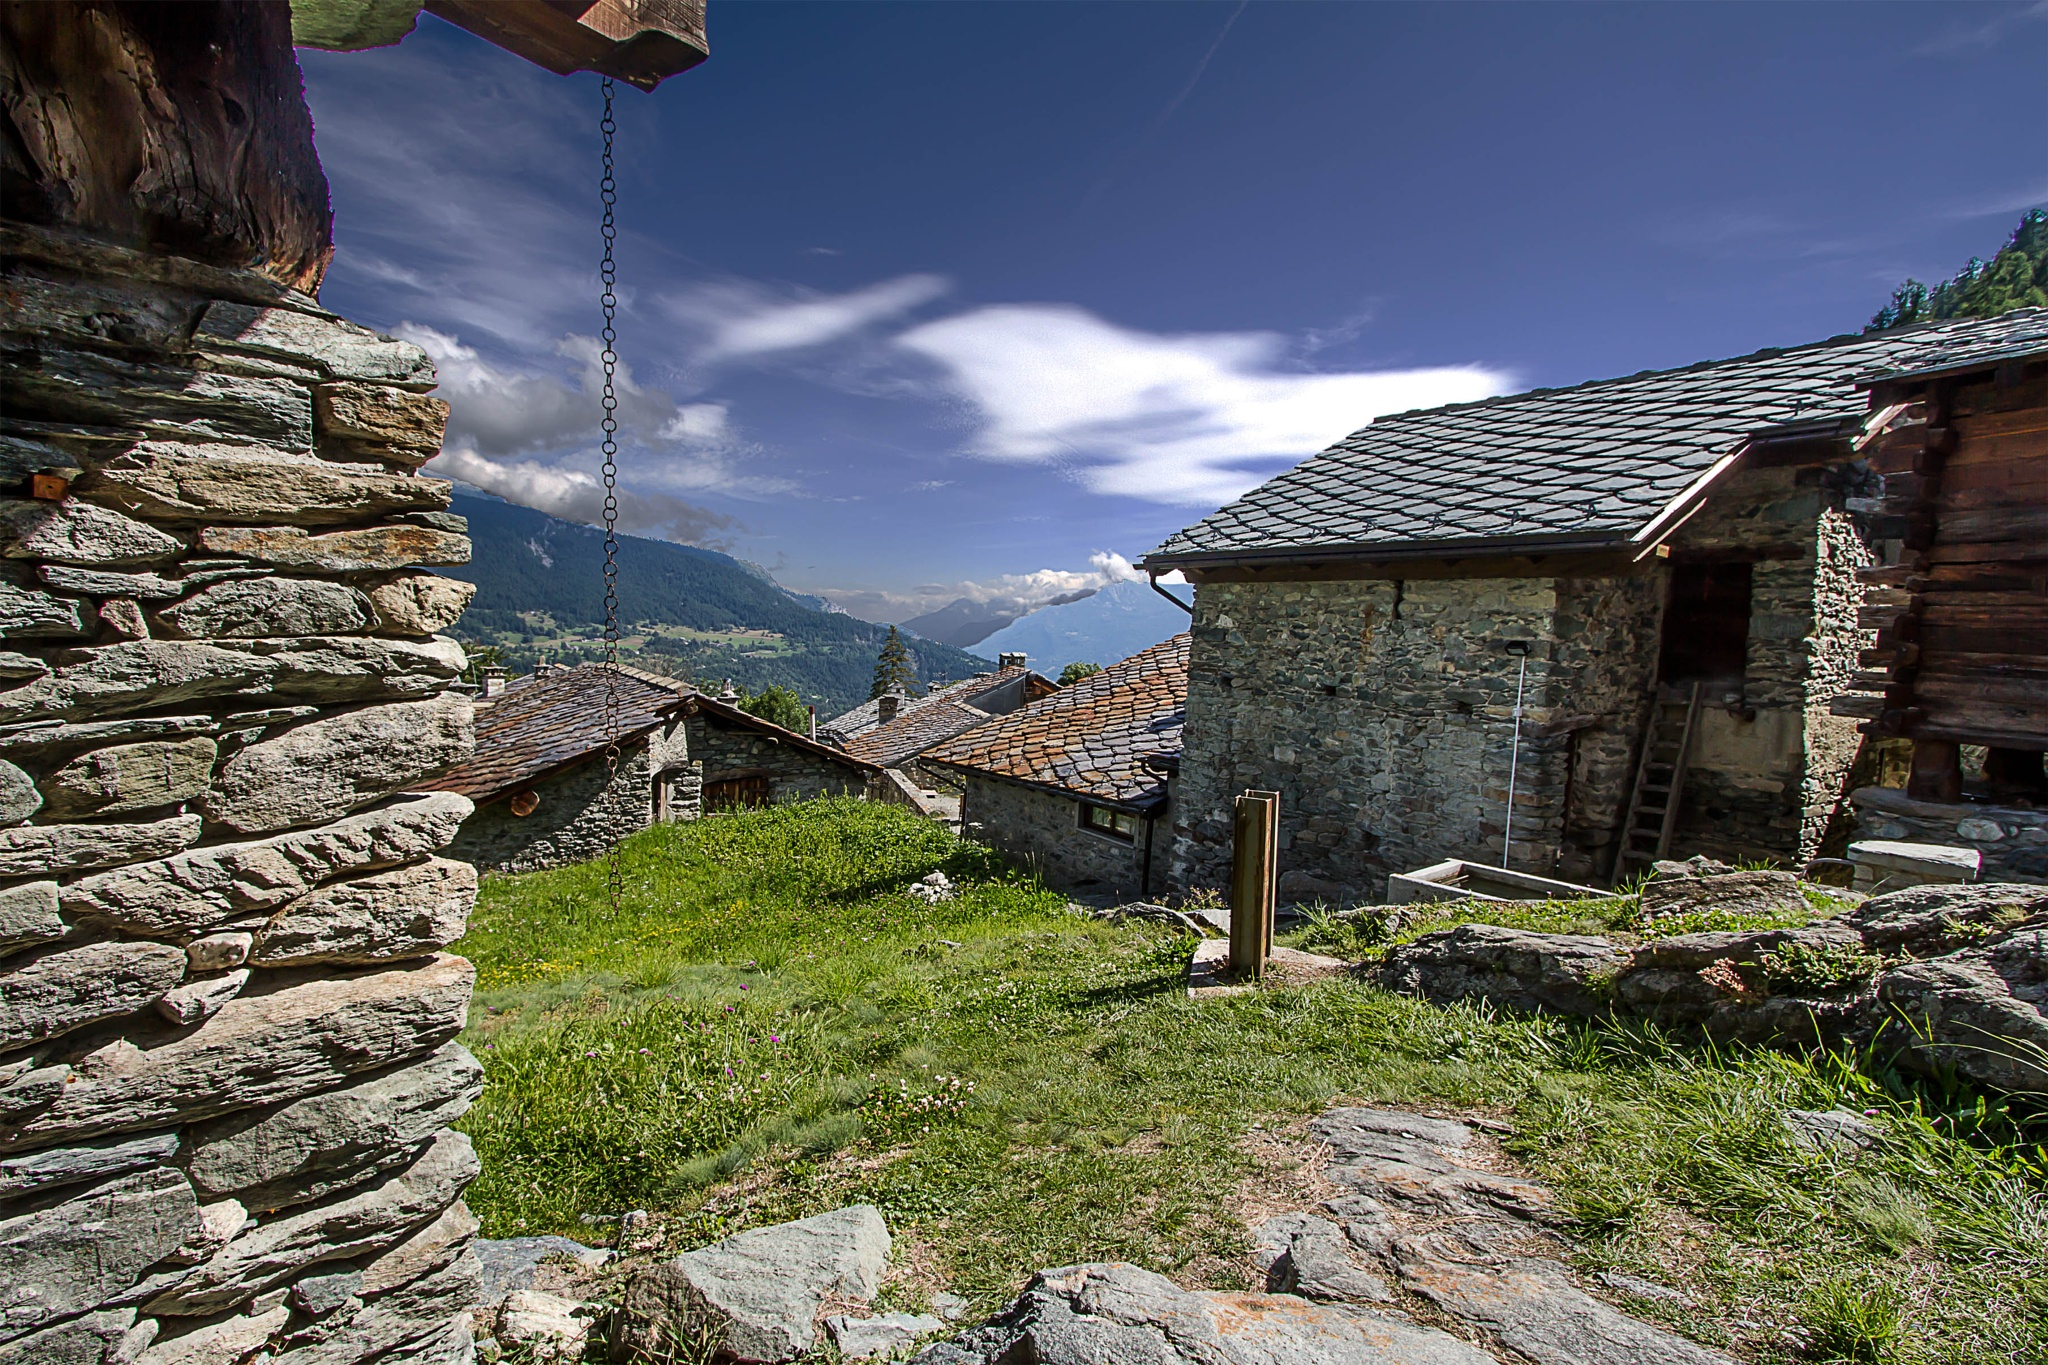 In montagna by Maurizio